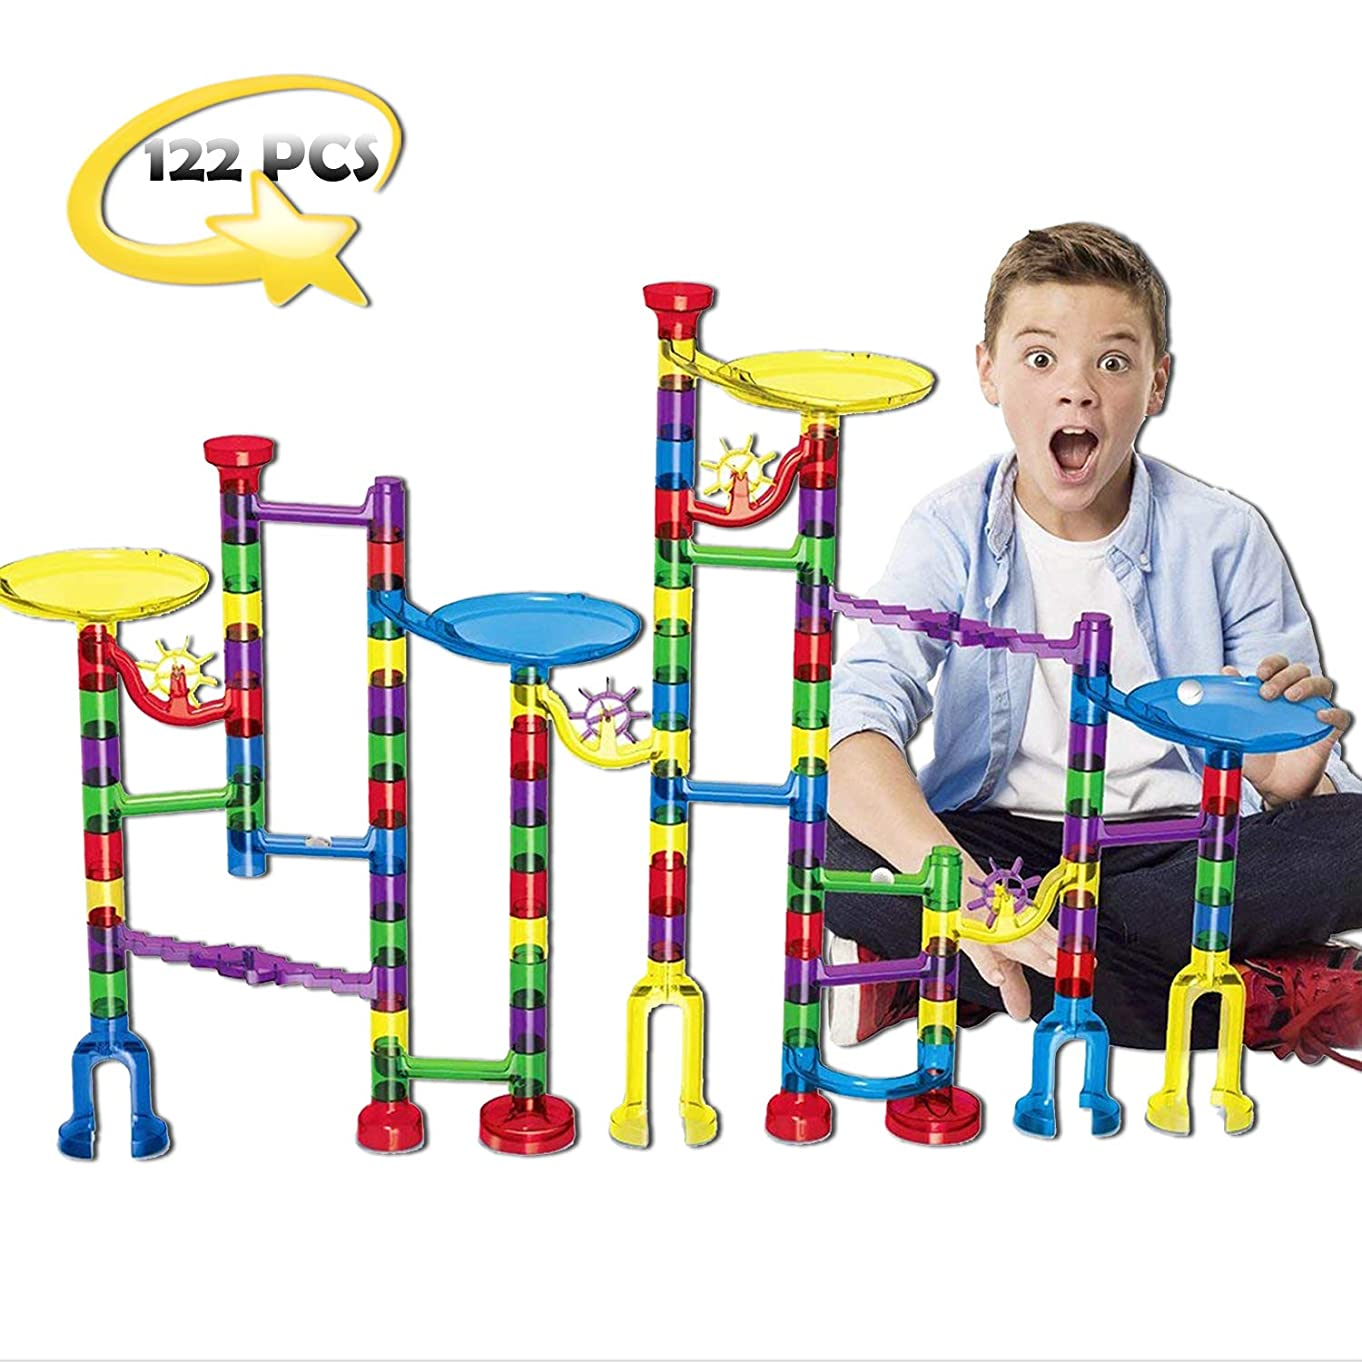 Mercury Nation Marble Run Set for Kids 122 Pcs Marble Game STEM Educational Construction, Learning Toy, Building Blocks for 4 5 6 7 + Kids Birthday, Easter Gifts